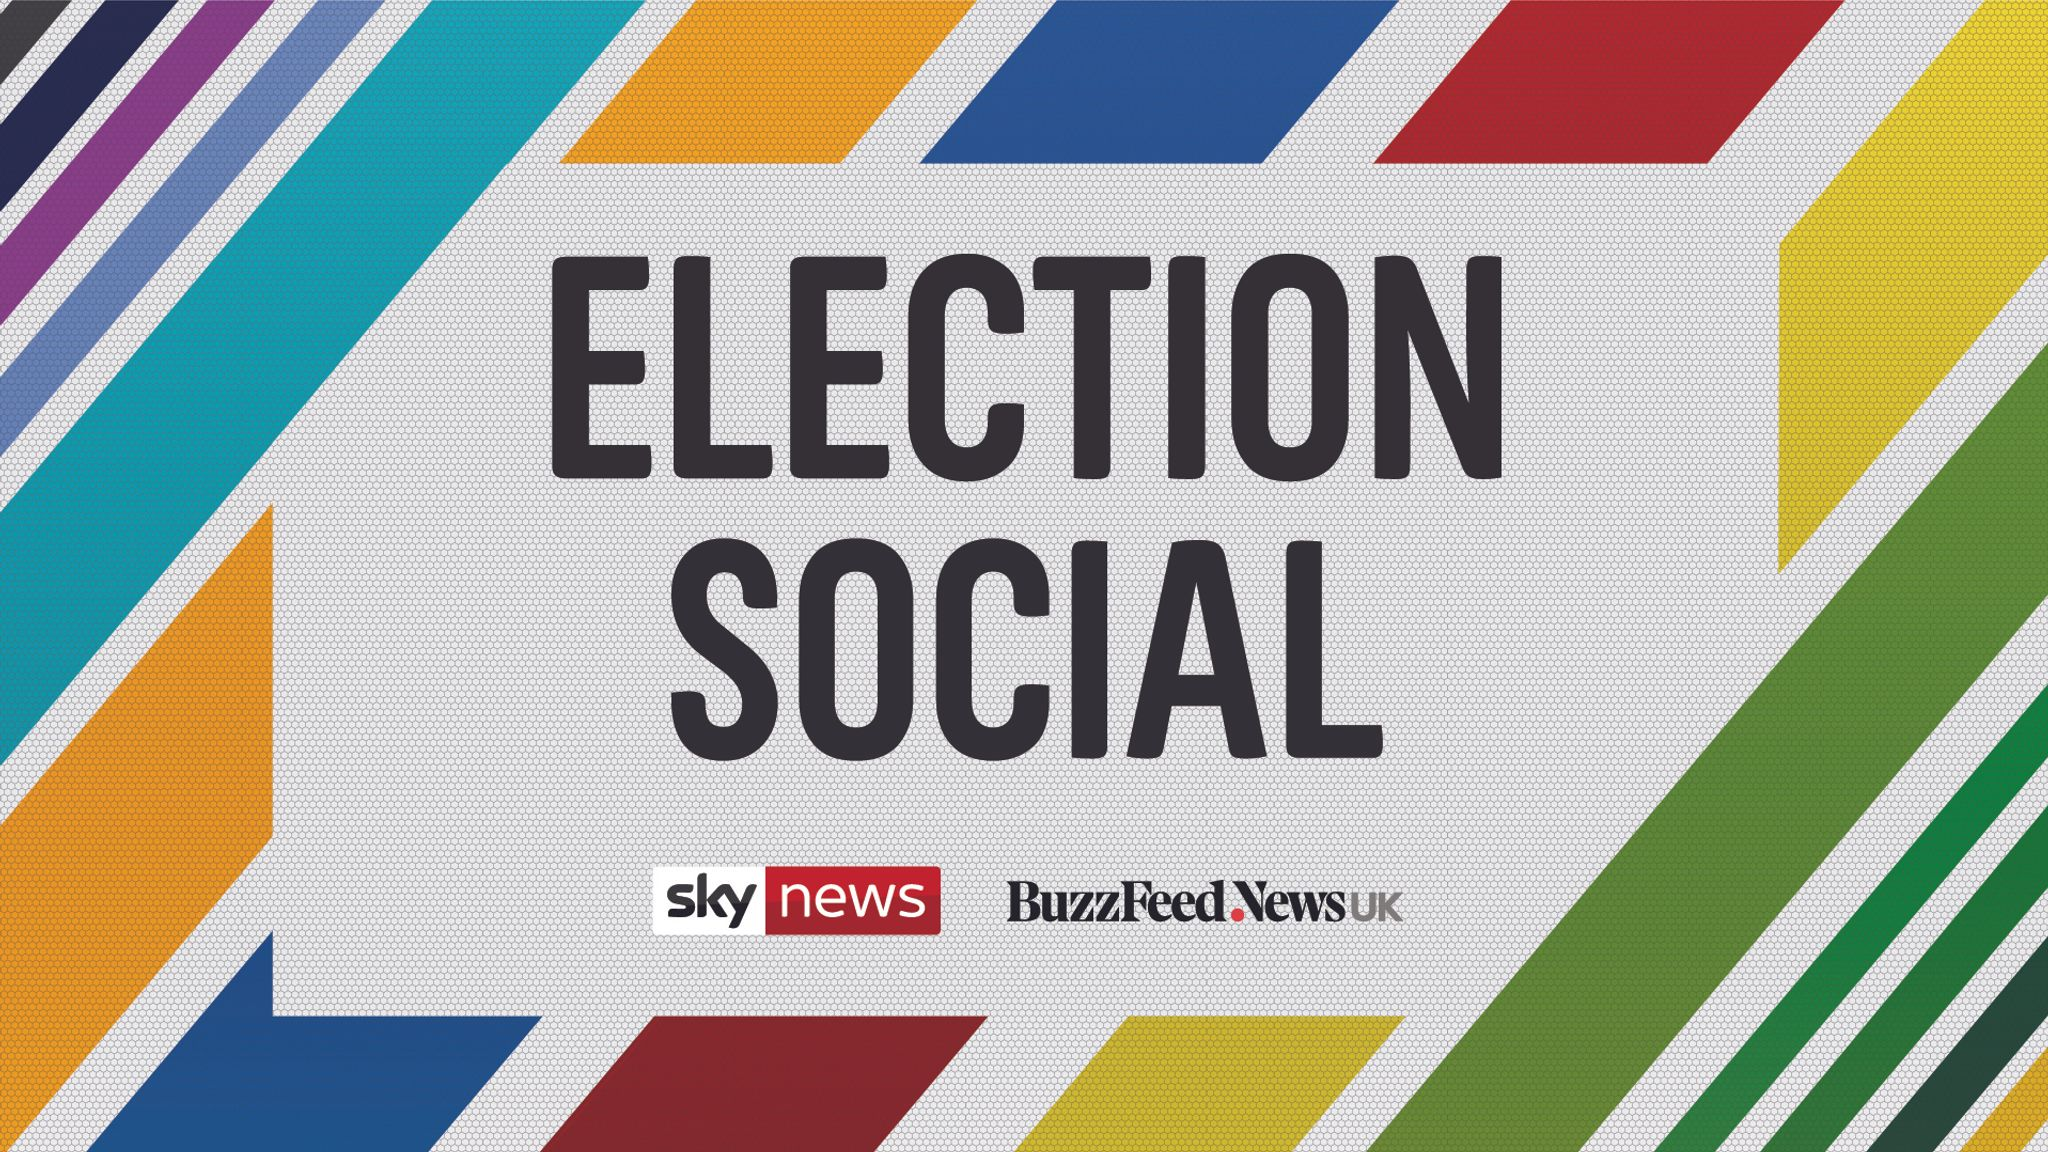 Election Social: The luscious side dish of Sky News' general election coverage